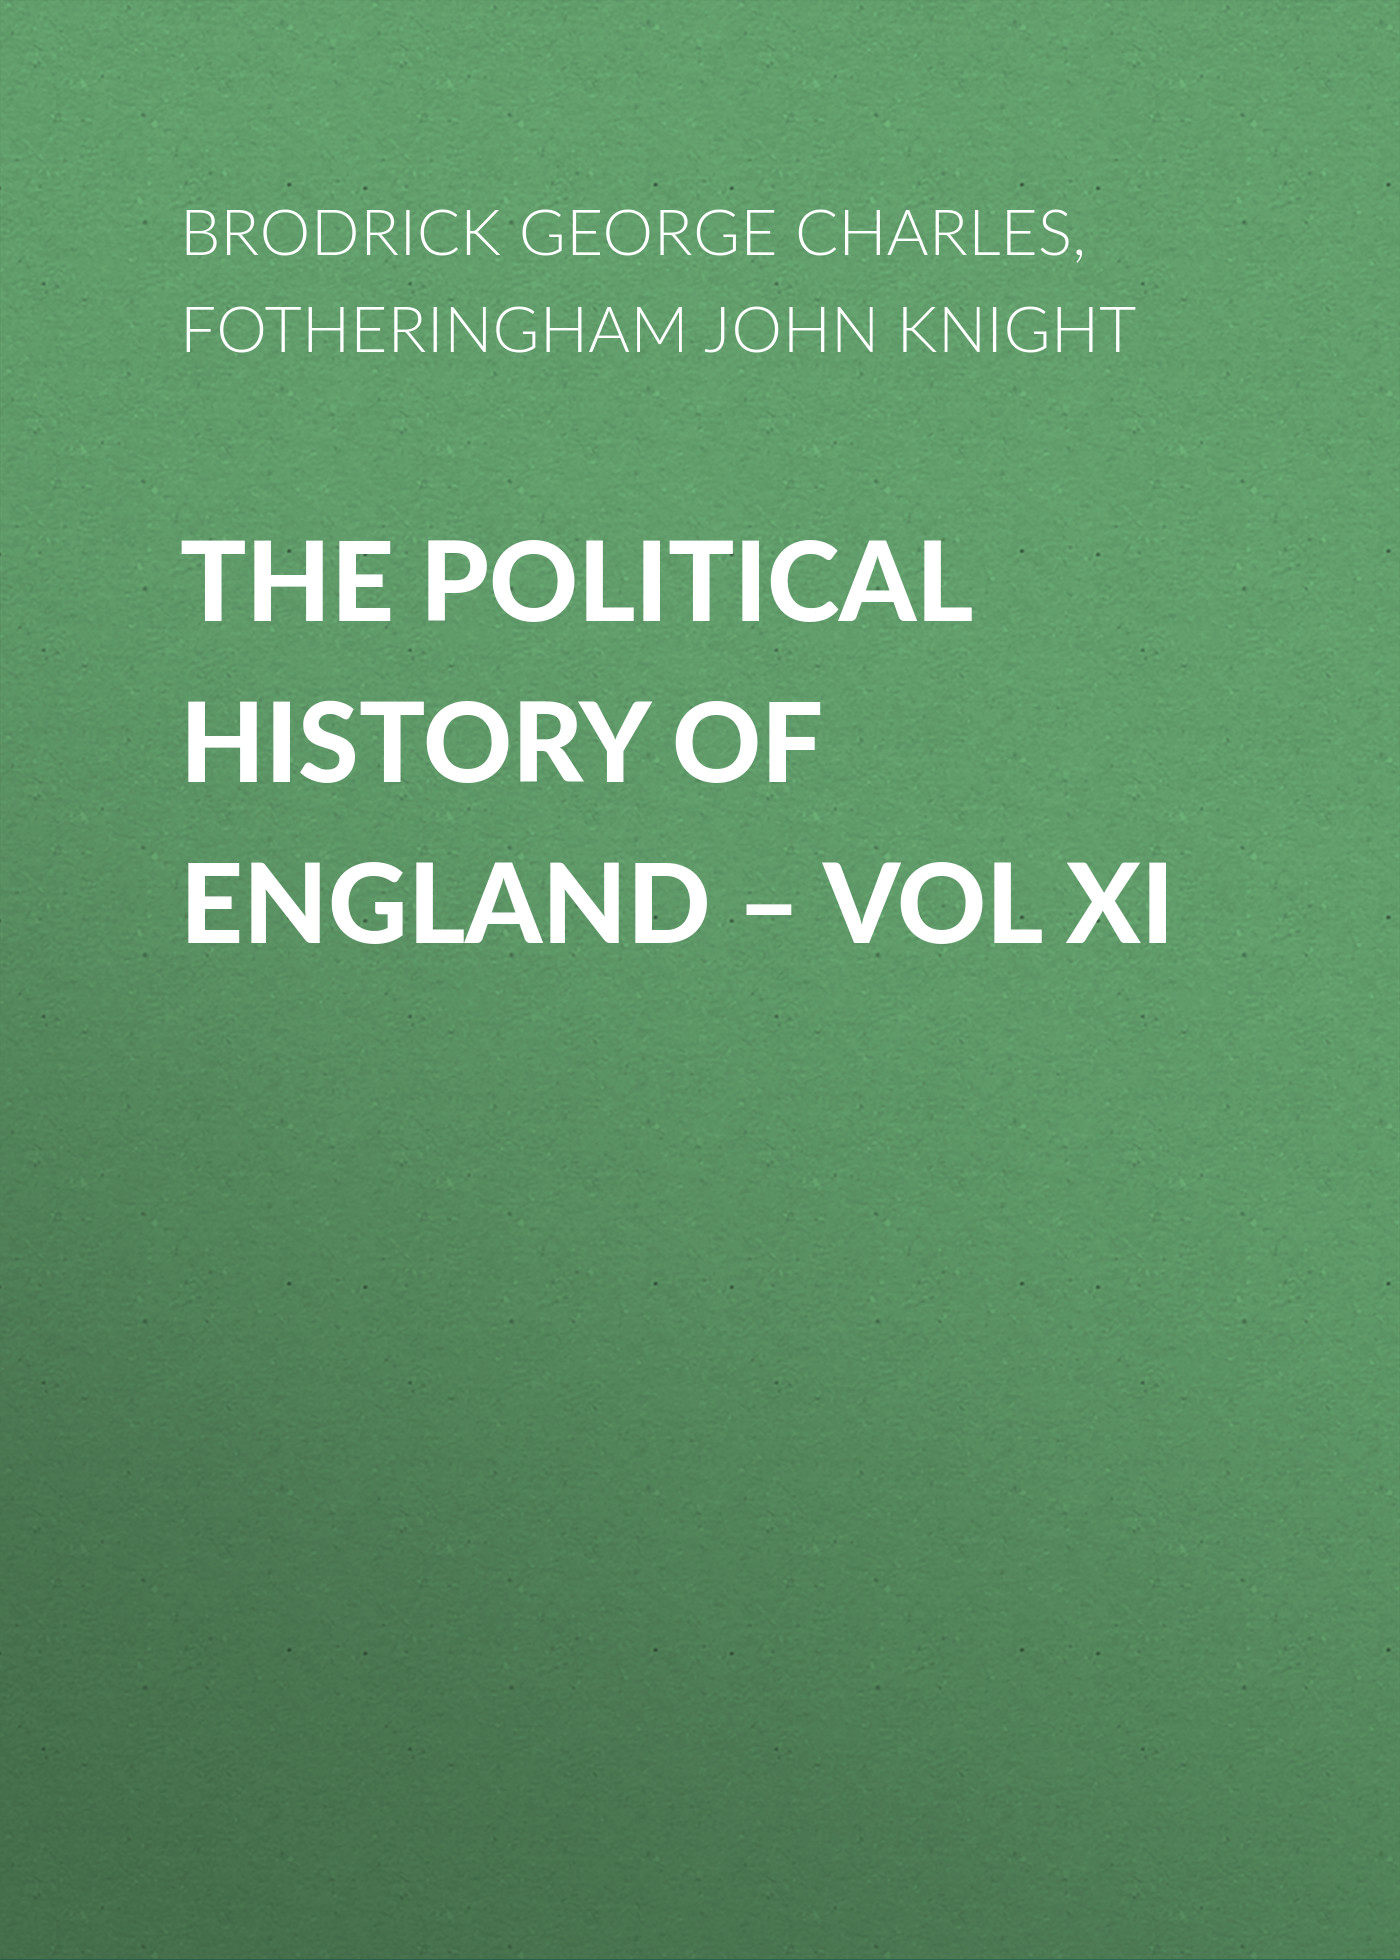 Fotheringham John Knight The Political History of England – Vol XI john macculloch principles of political economy